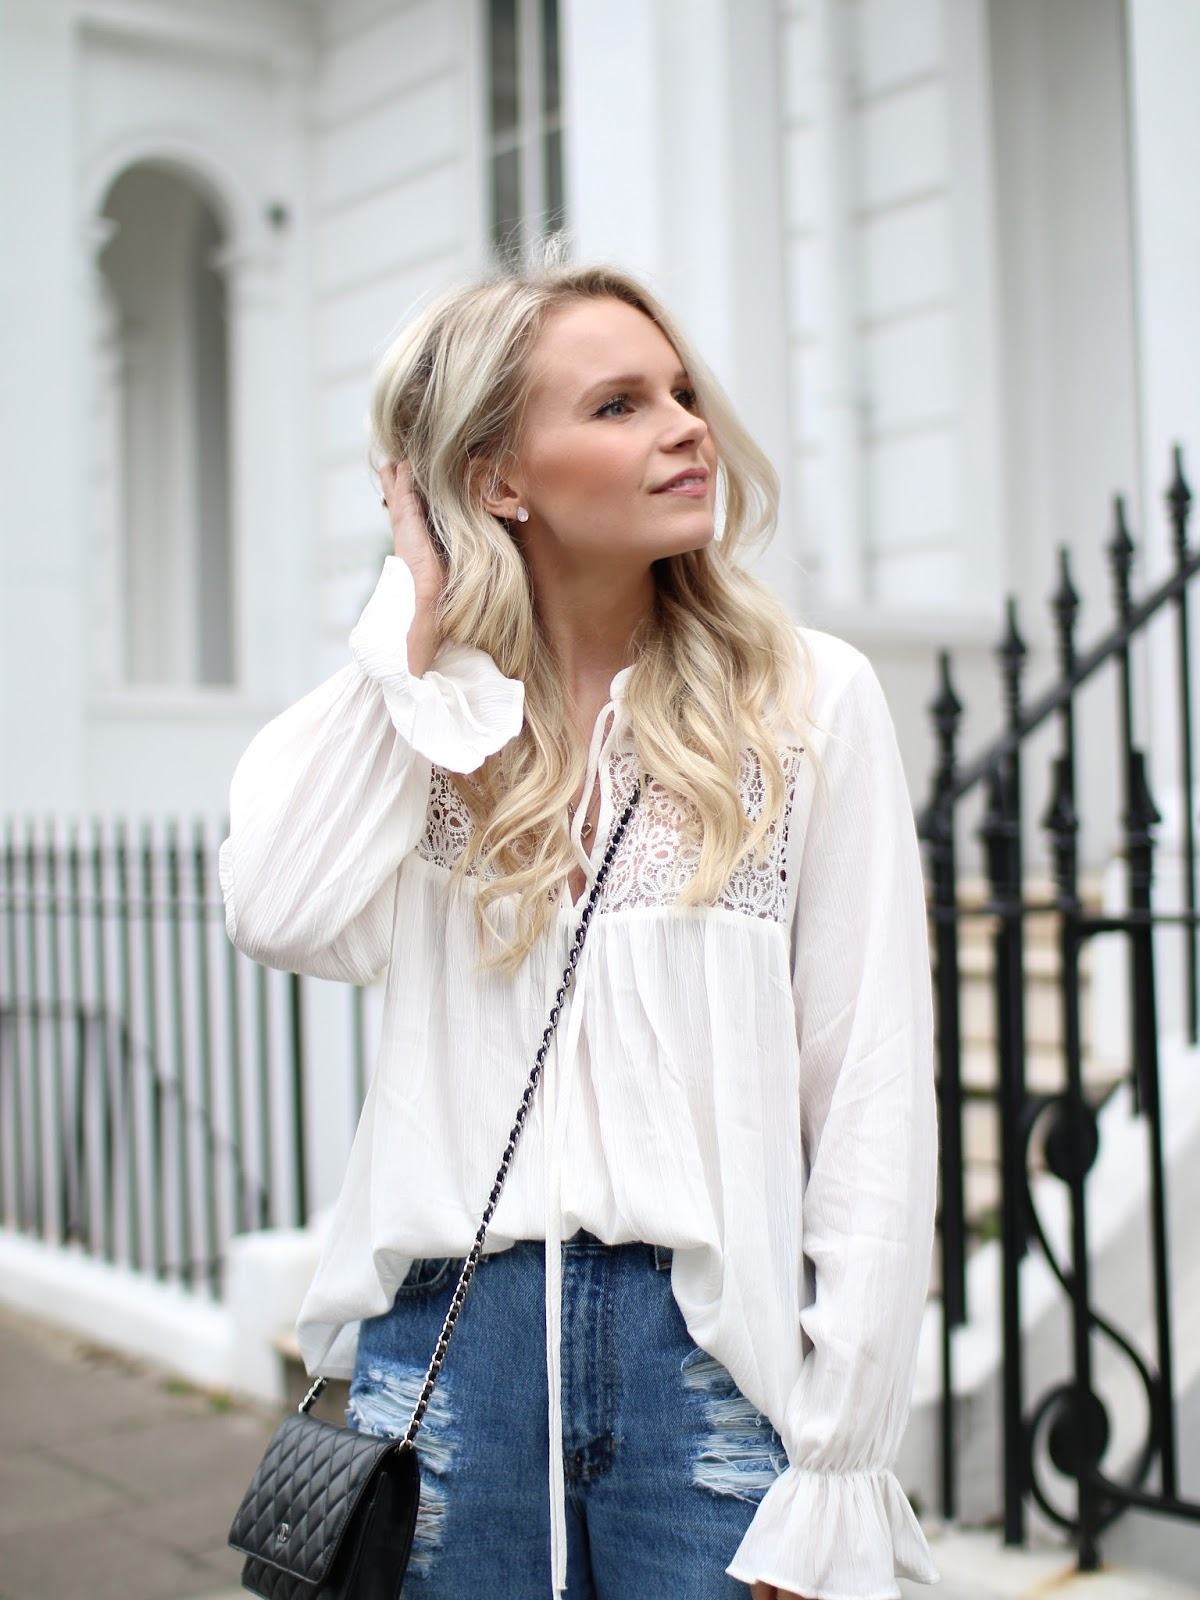 neutral makeup on a blonde women wearing a pretty white lace boho top in H&M and ripped blue jeans